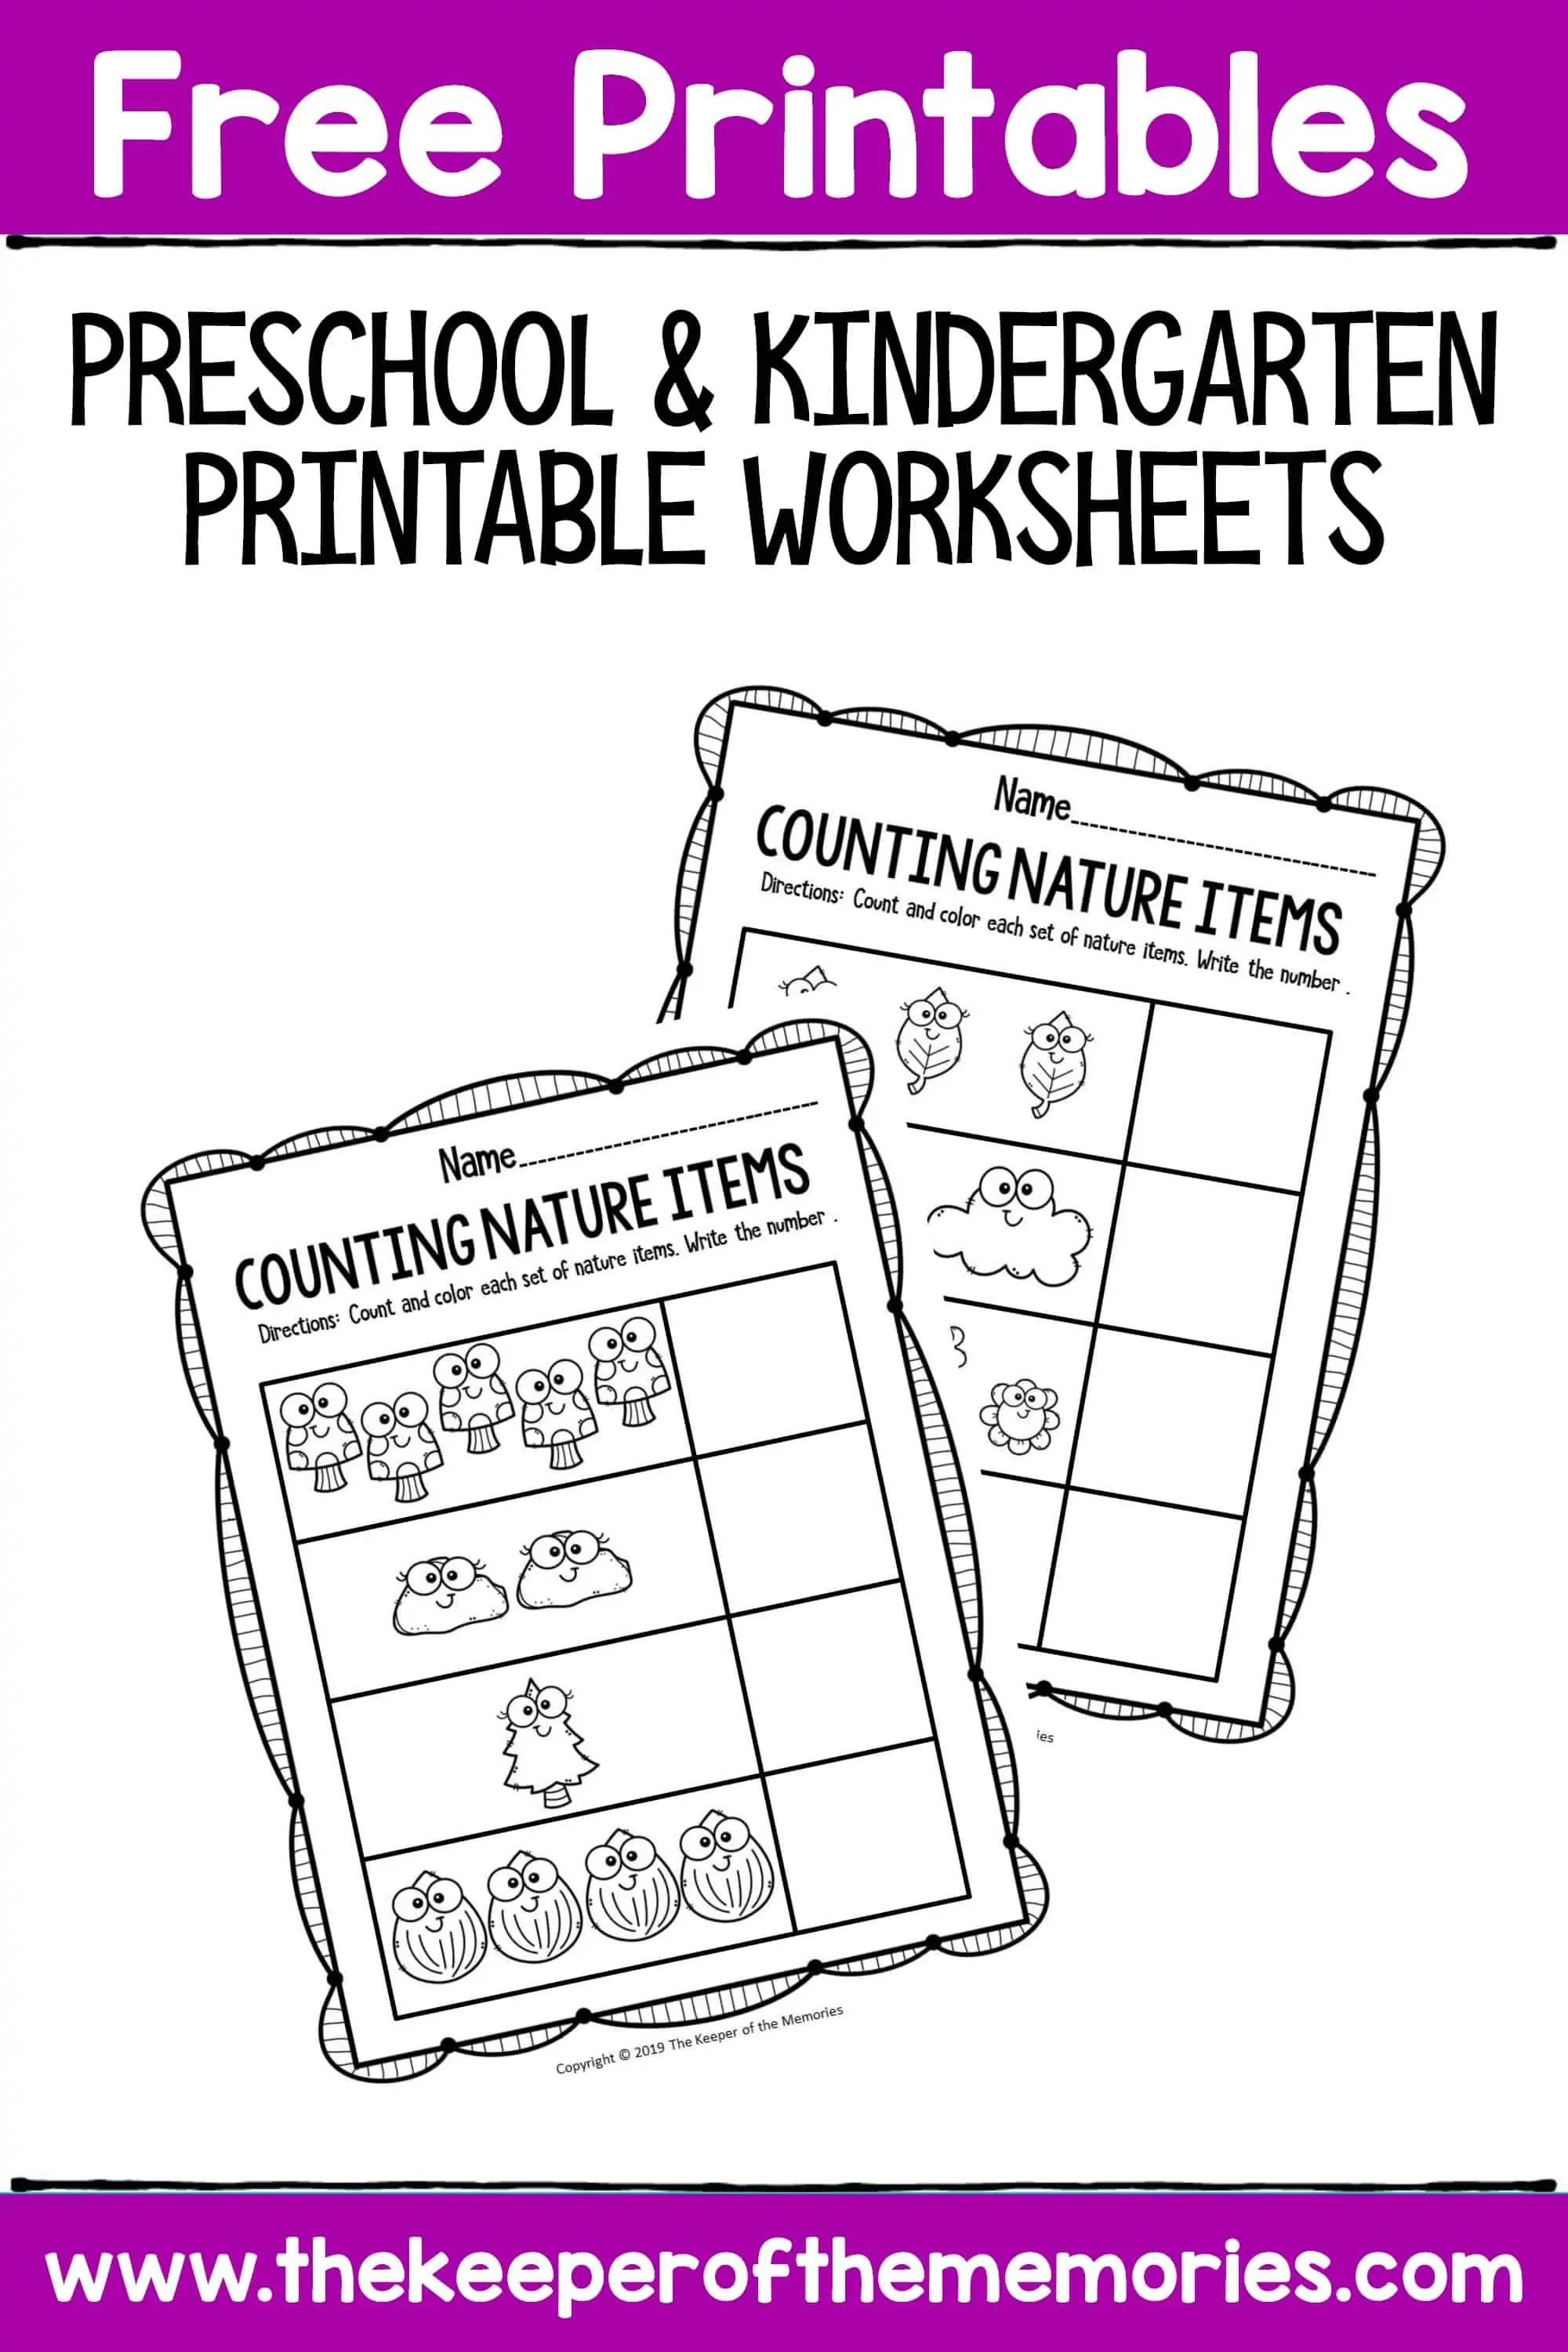 Free Printable Preschool And Kindergarten Worksheets